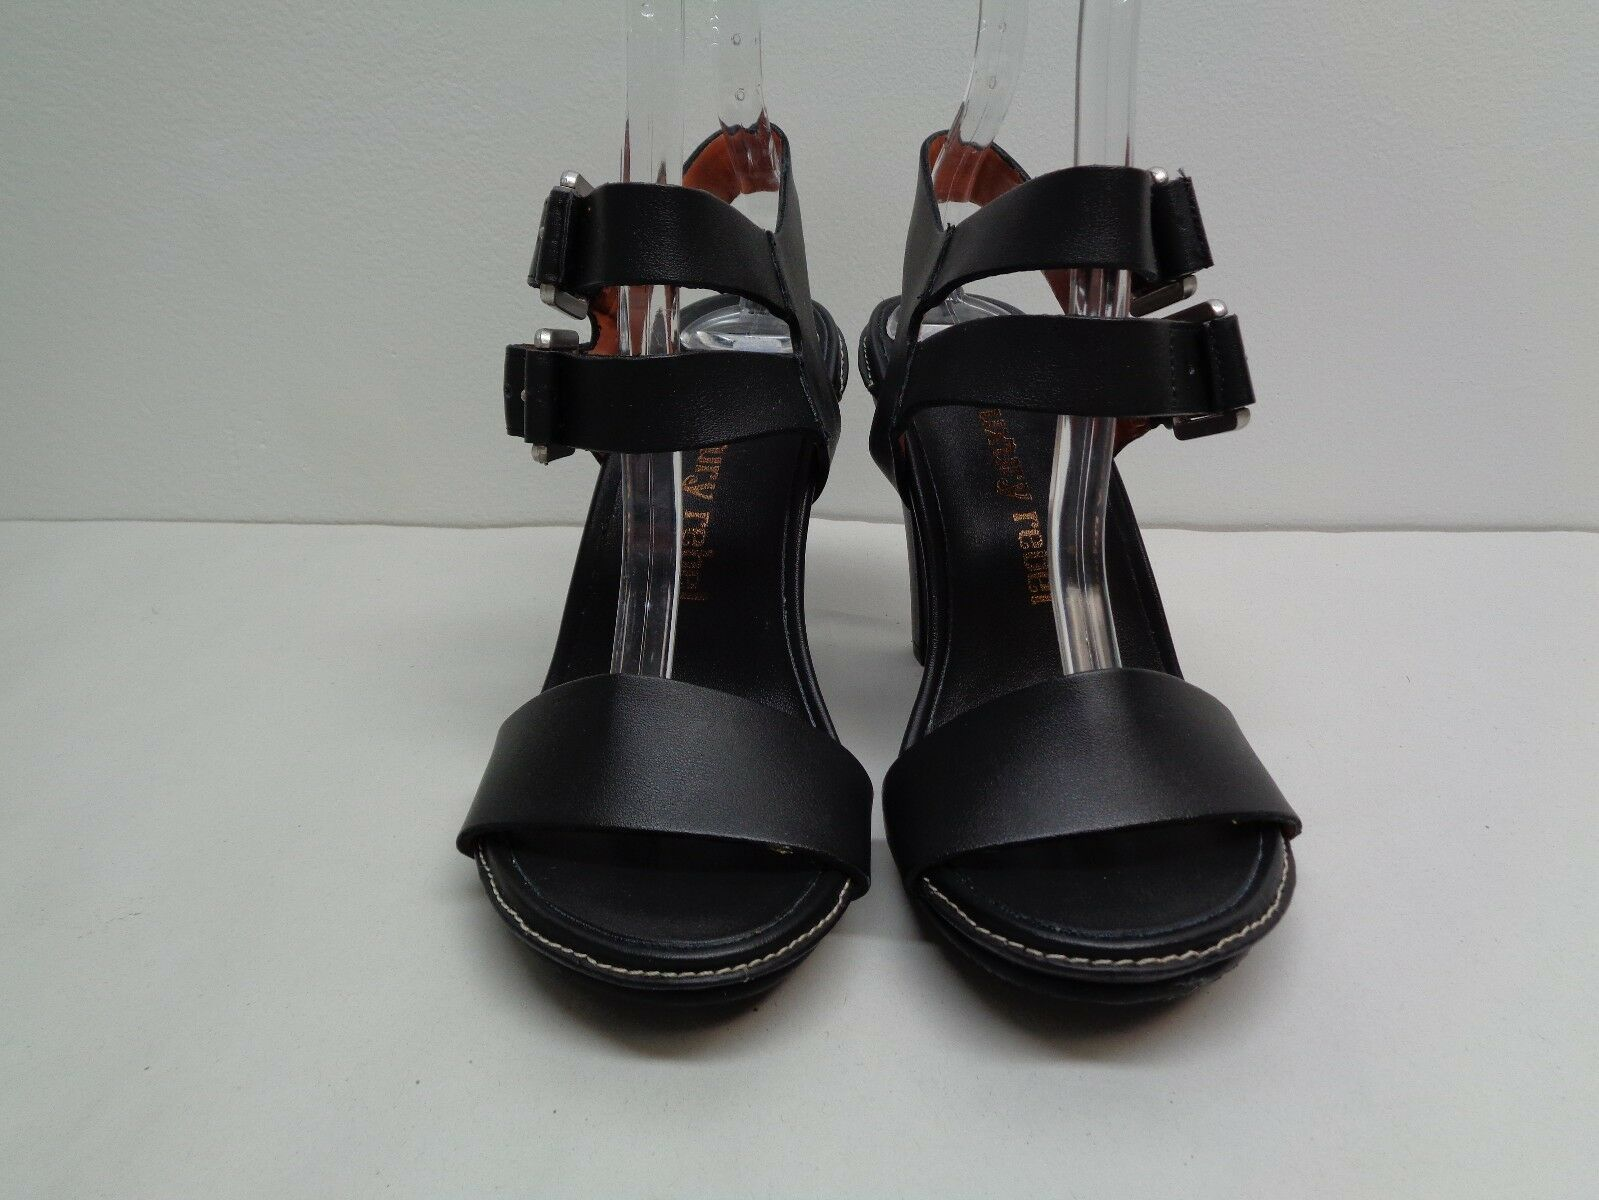 Luxury Rebel Dimensione 6 M Eur 36 CHANTAL CHANTAL CHANTAL nero Heels Sandals New donna scarpe 4203e7